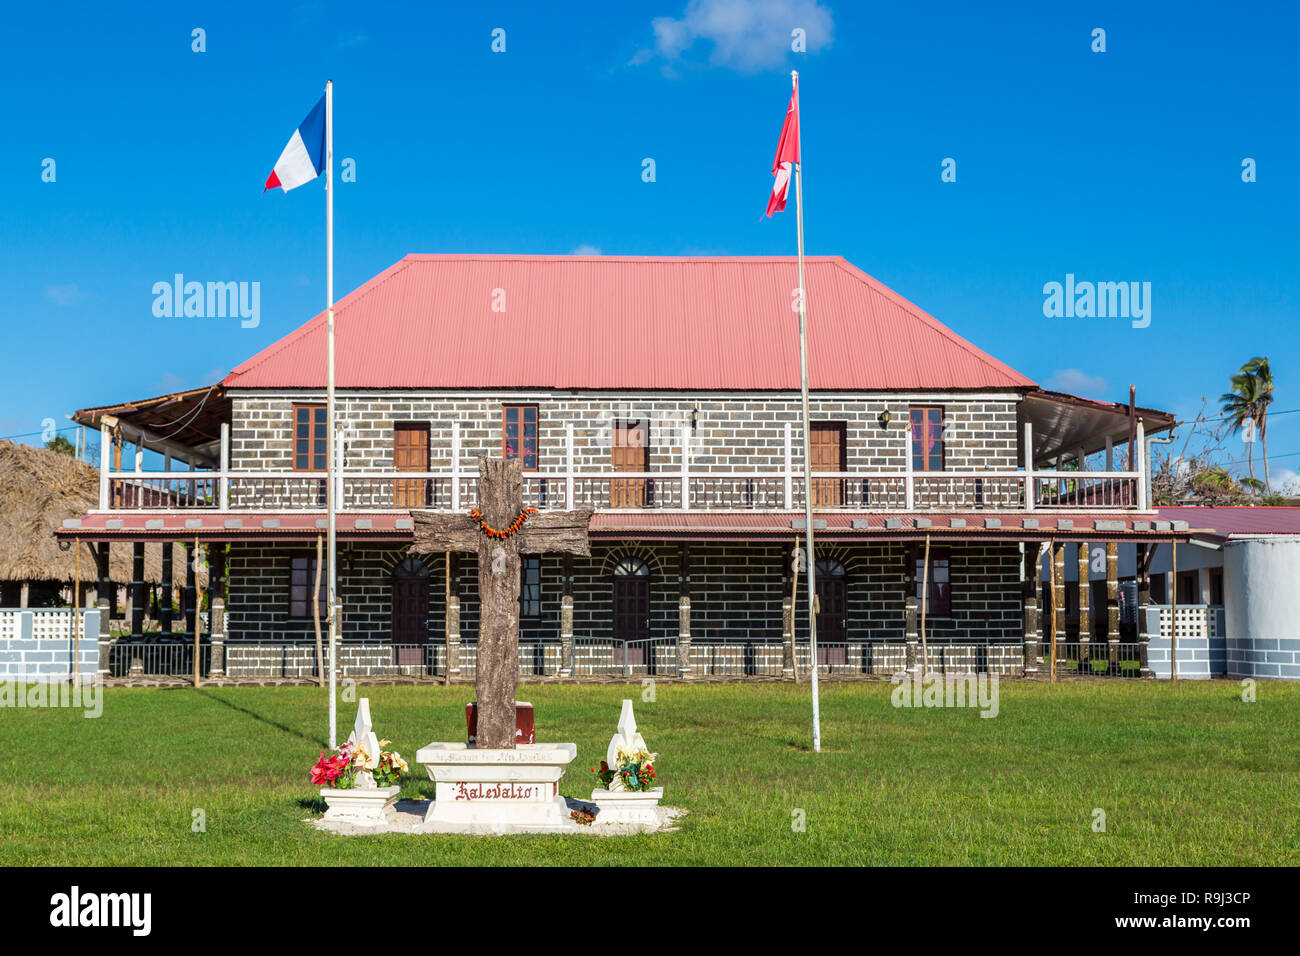 Mata-Utu, Wallis and Futuna - Jan 5 2013: Customary King's Palace in the capital of territory of Wallis-et-Futuna, French overseas island collectivity - Stock Image